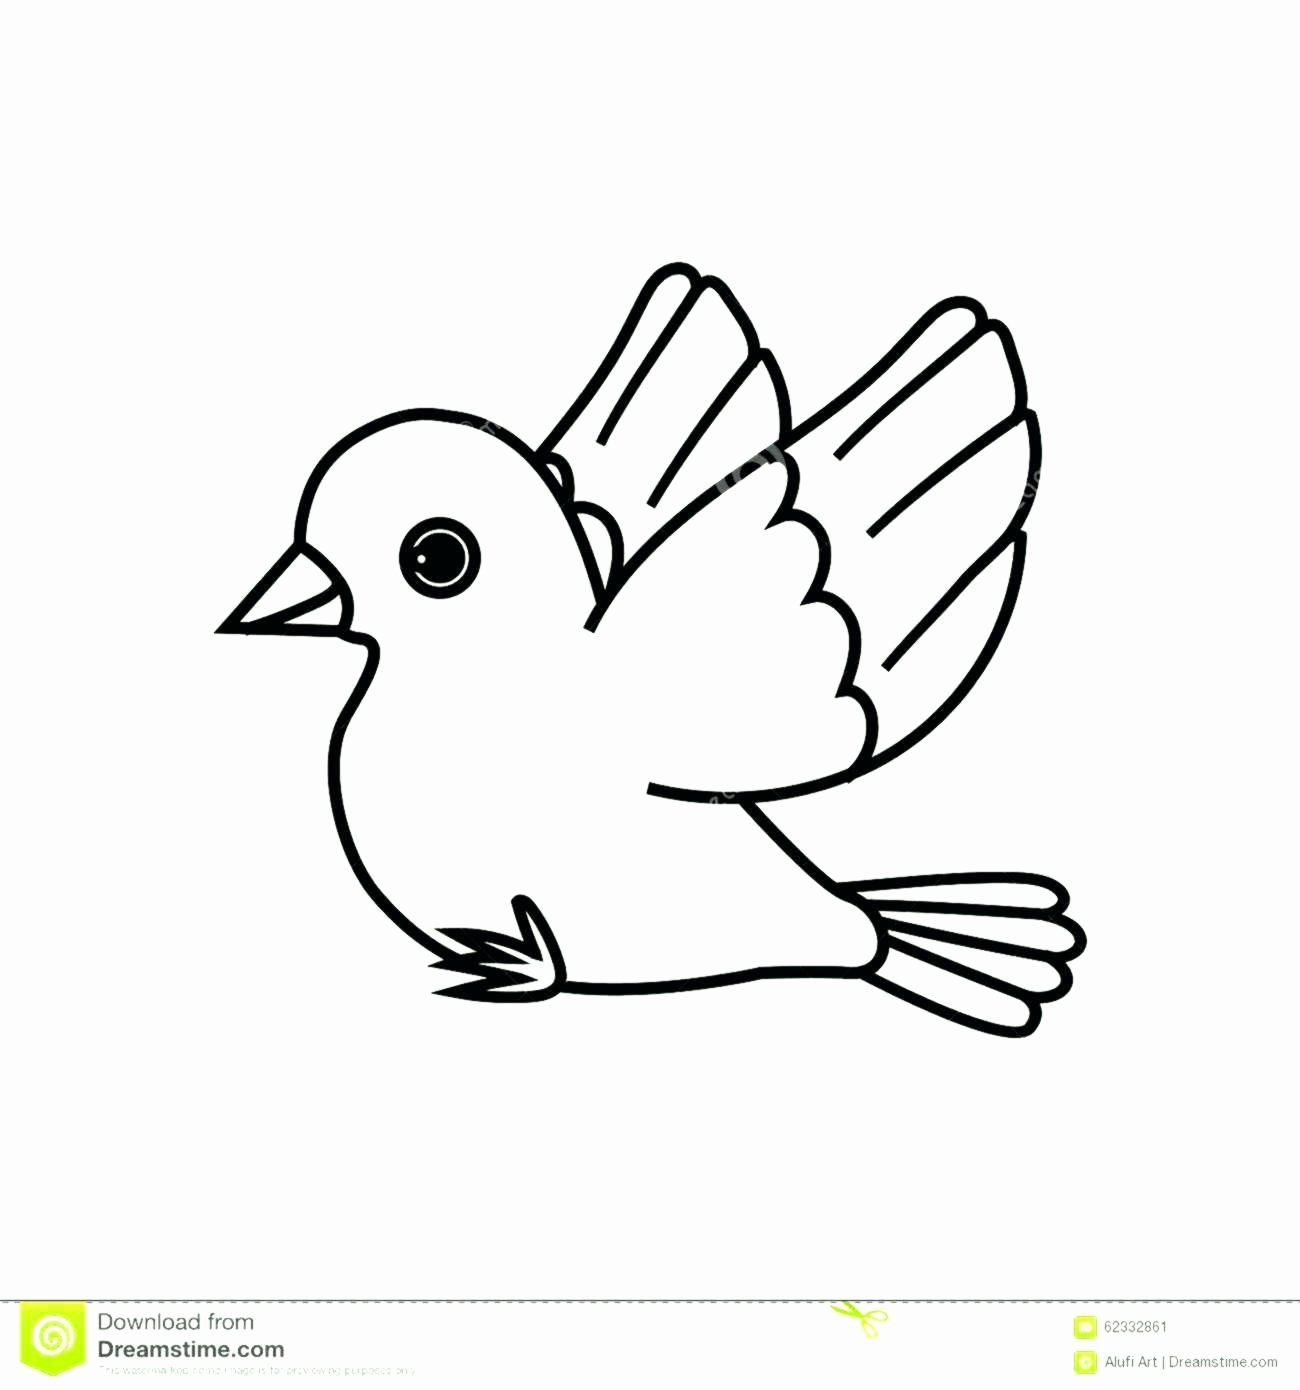 State Bird Coloring Pages Fresh Iowa Coloring Pages Album Sabadaphnecottage Bird Coloring Pages Animal Coloring Pages Cute Birds